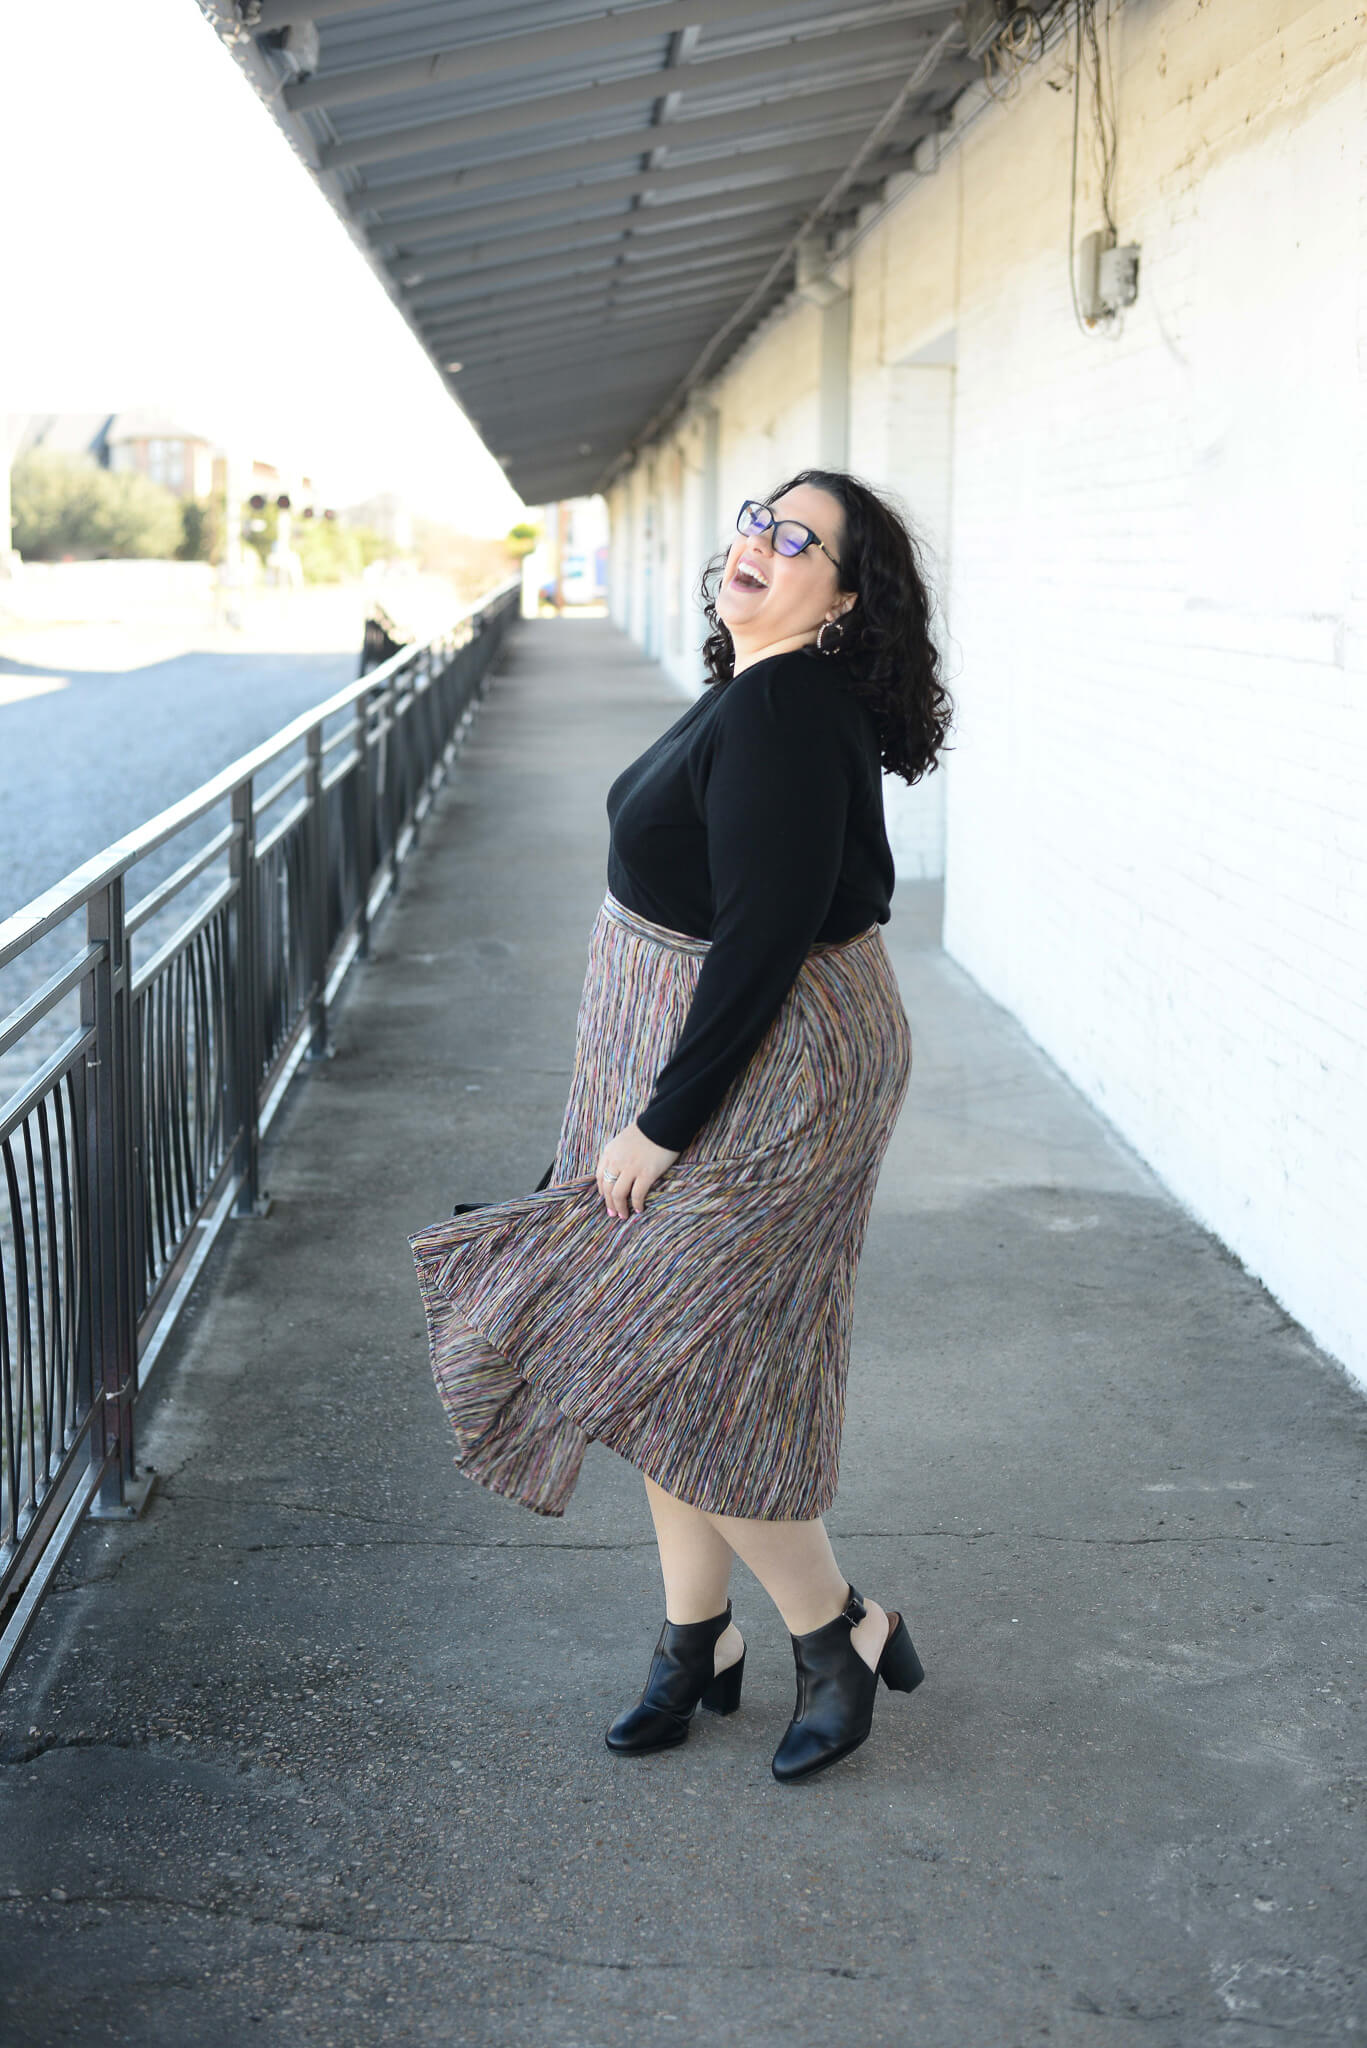 How to style a plus size skirt